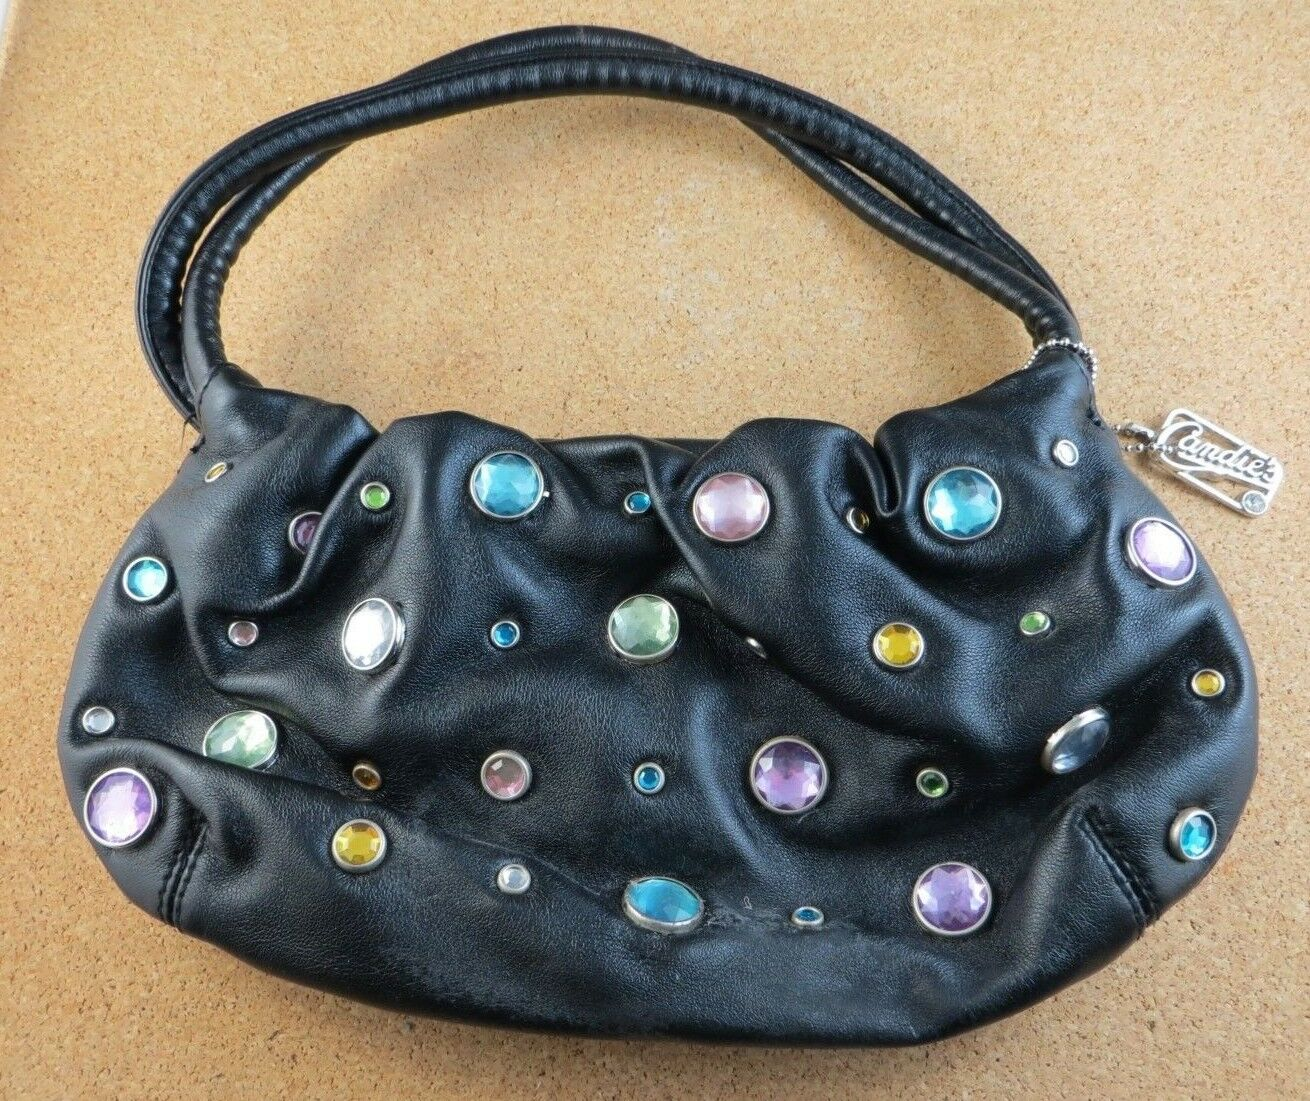 Small Vintage Candie's Faux Black Leather Pave Jeweled Handbag Clutch Purse Bag